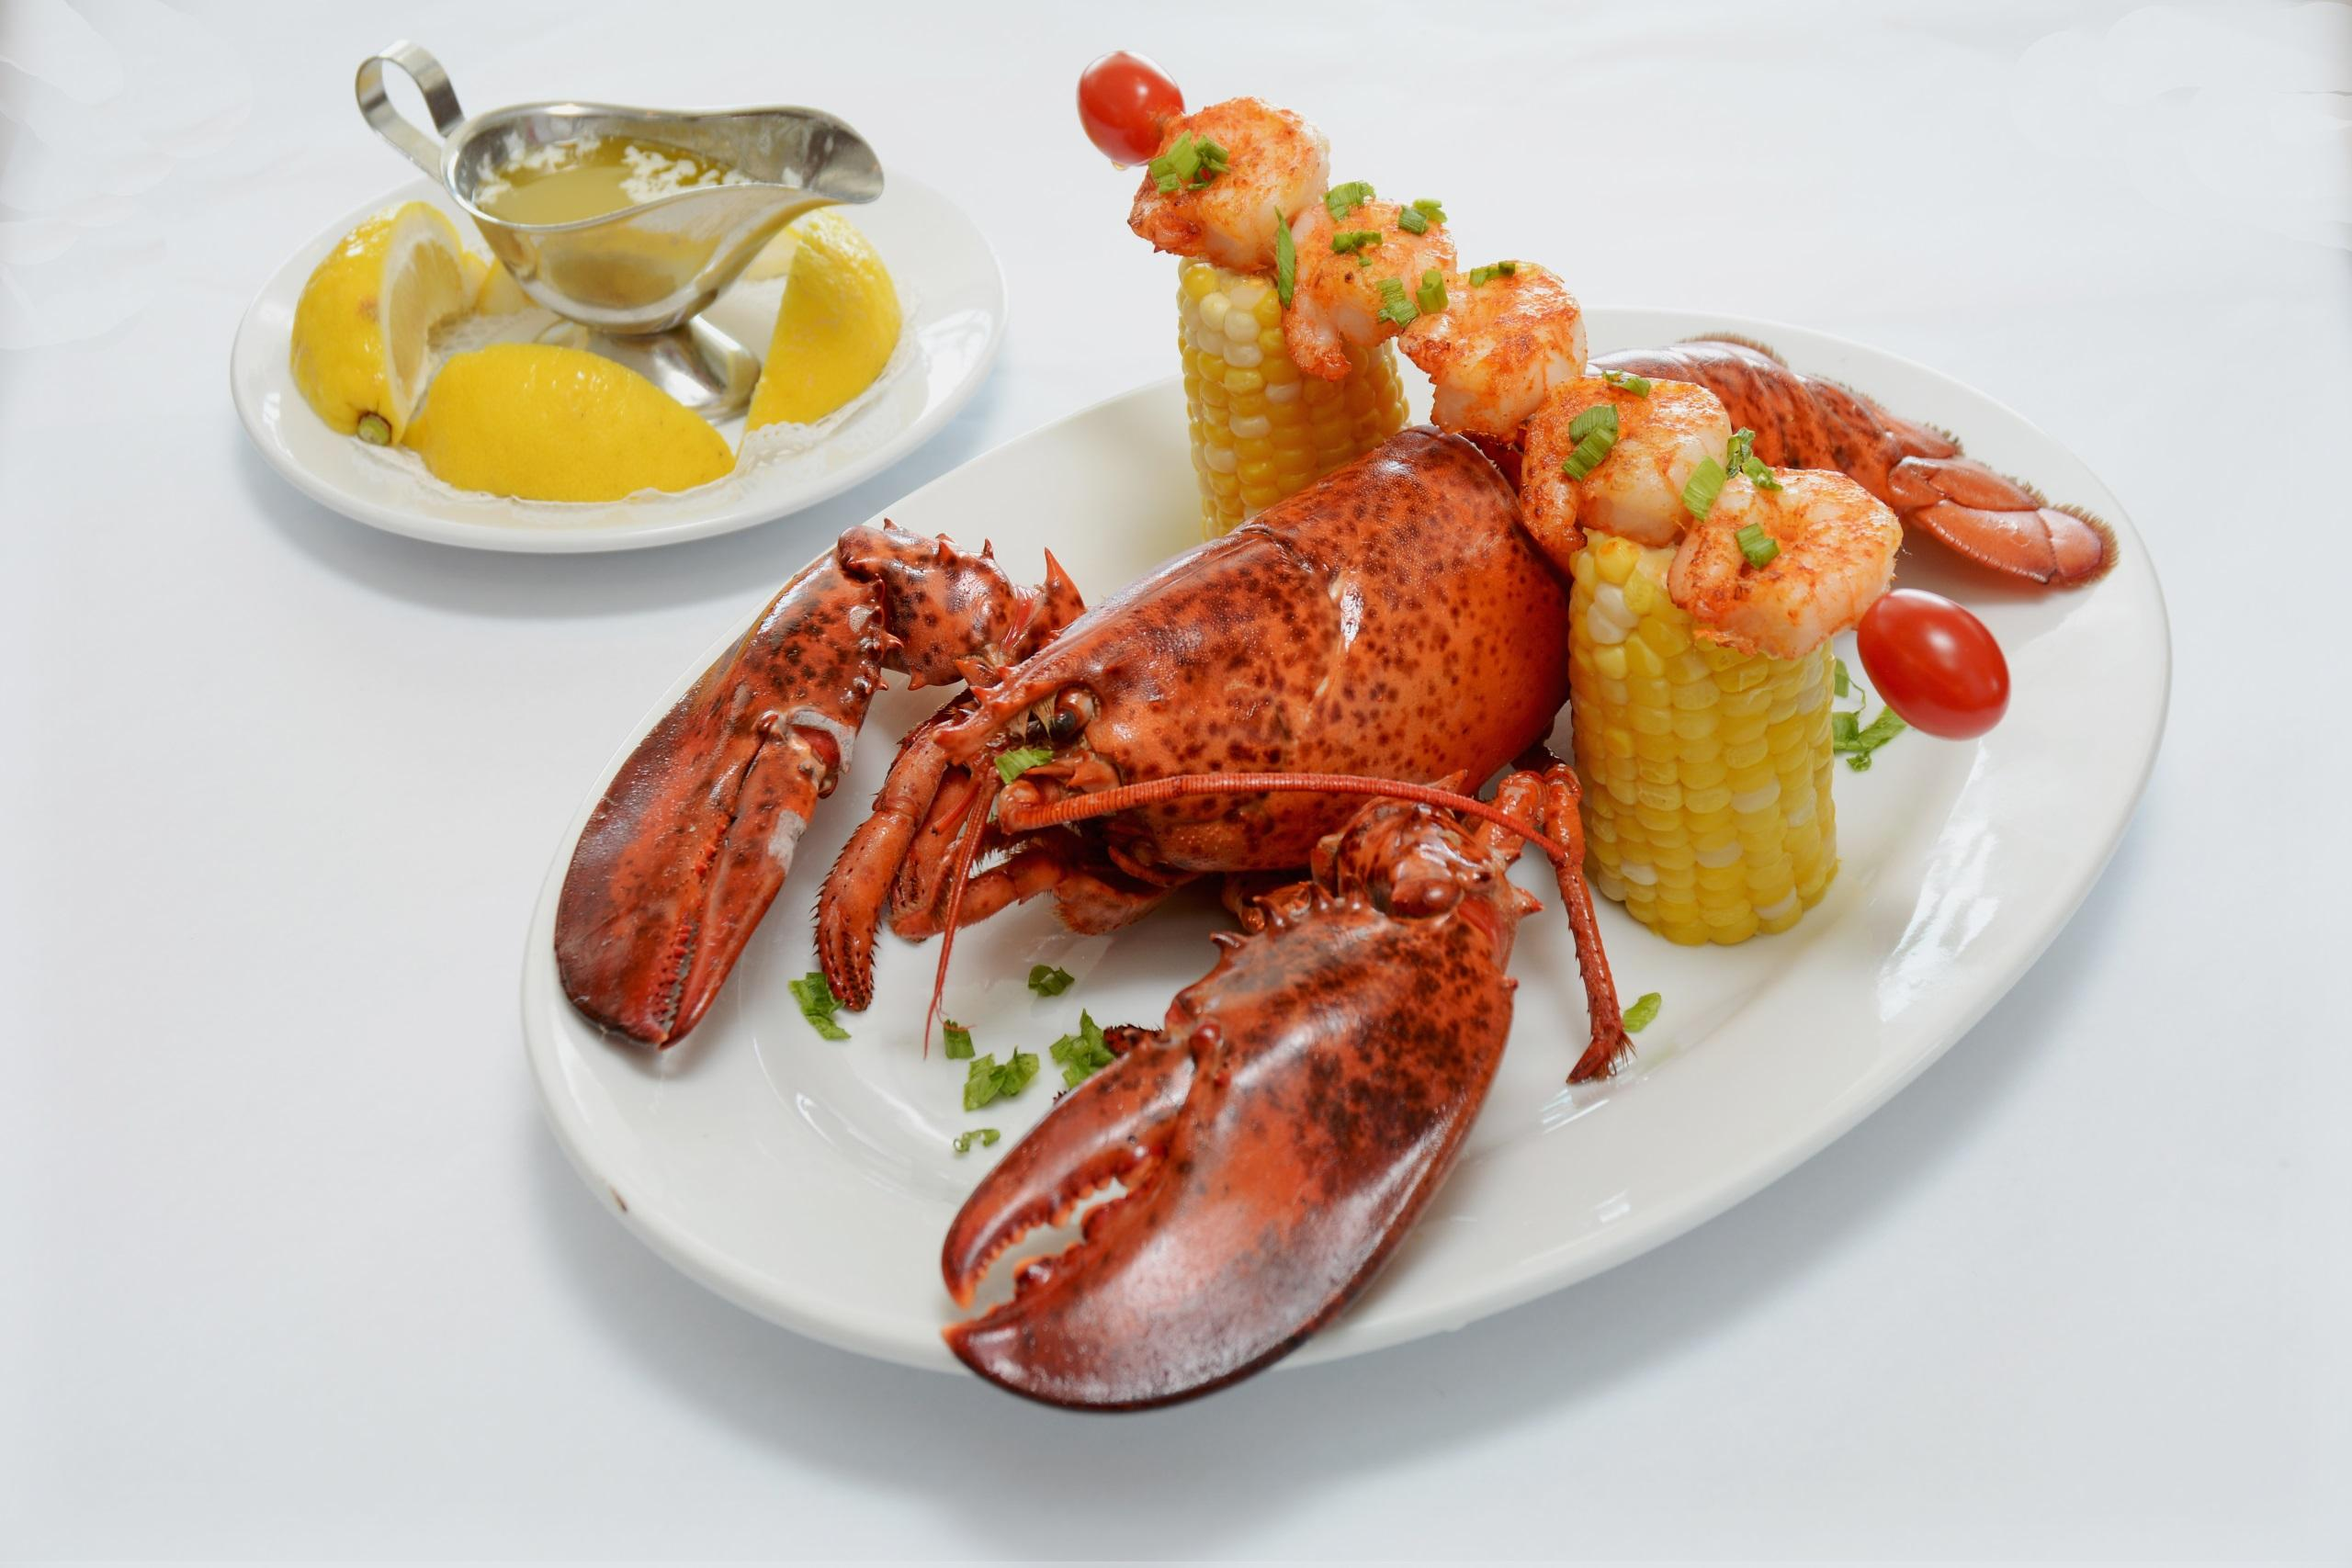 Surfside Inn - Lobster